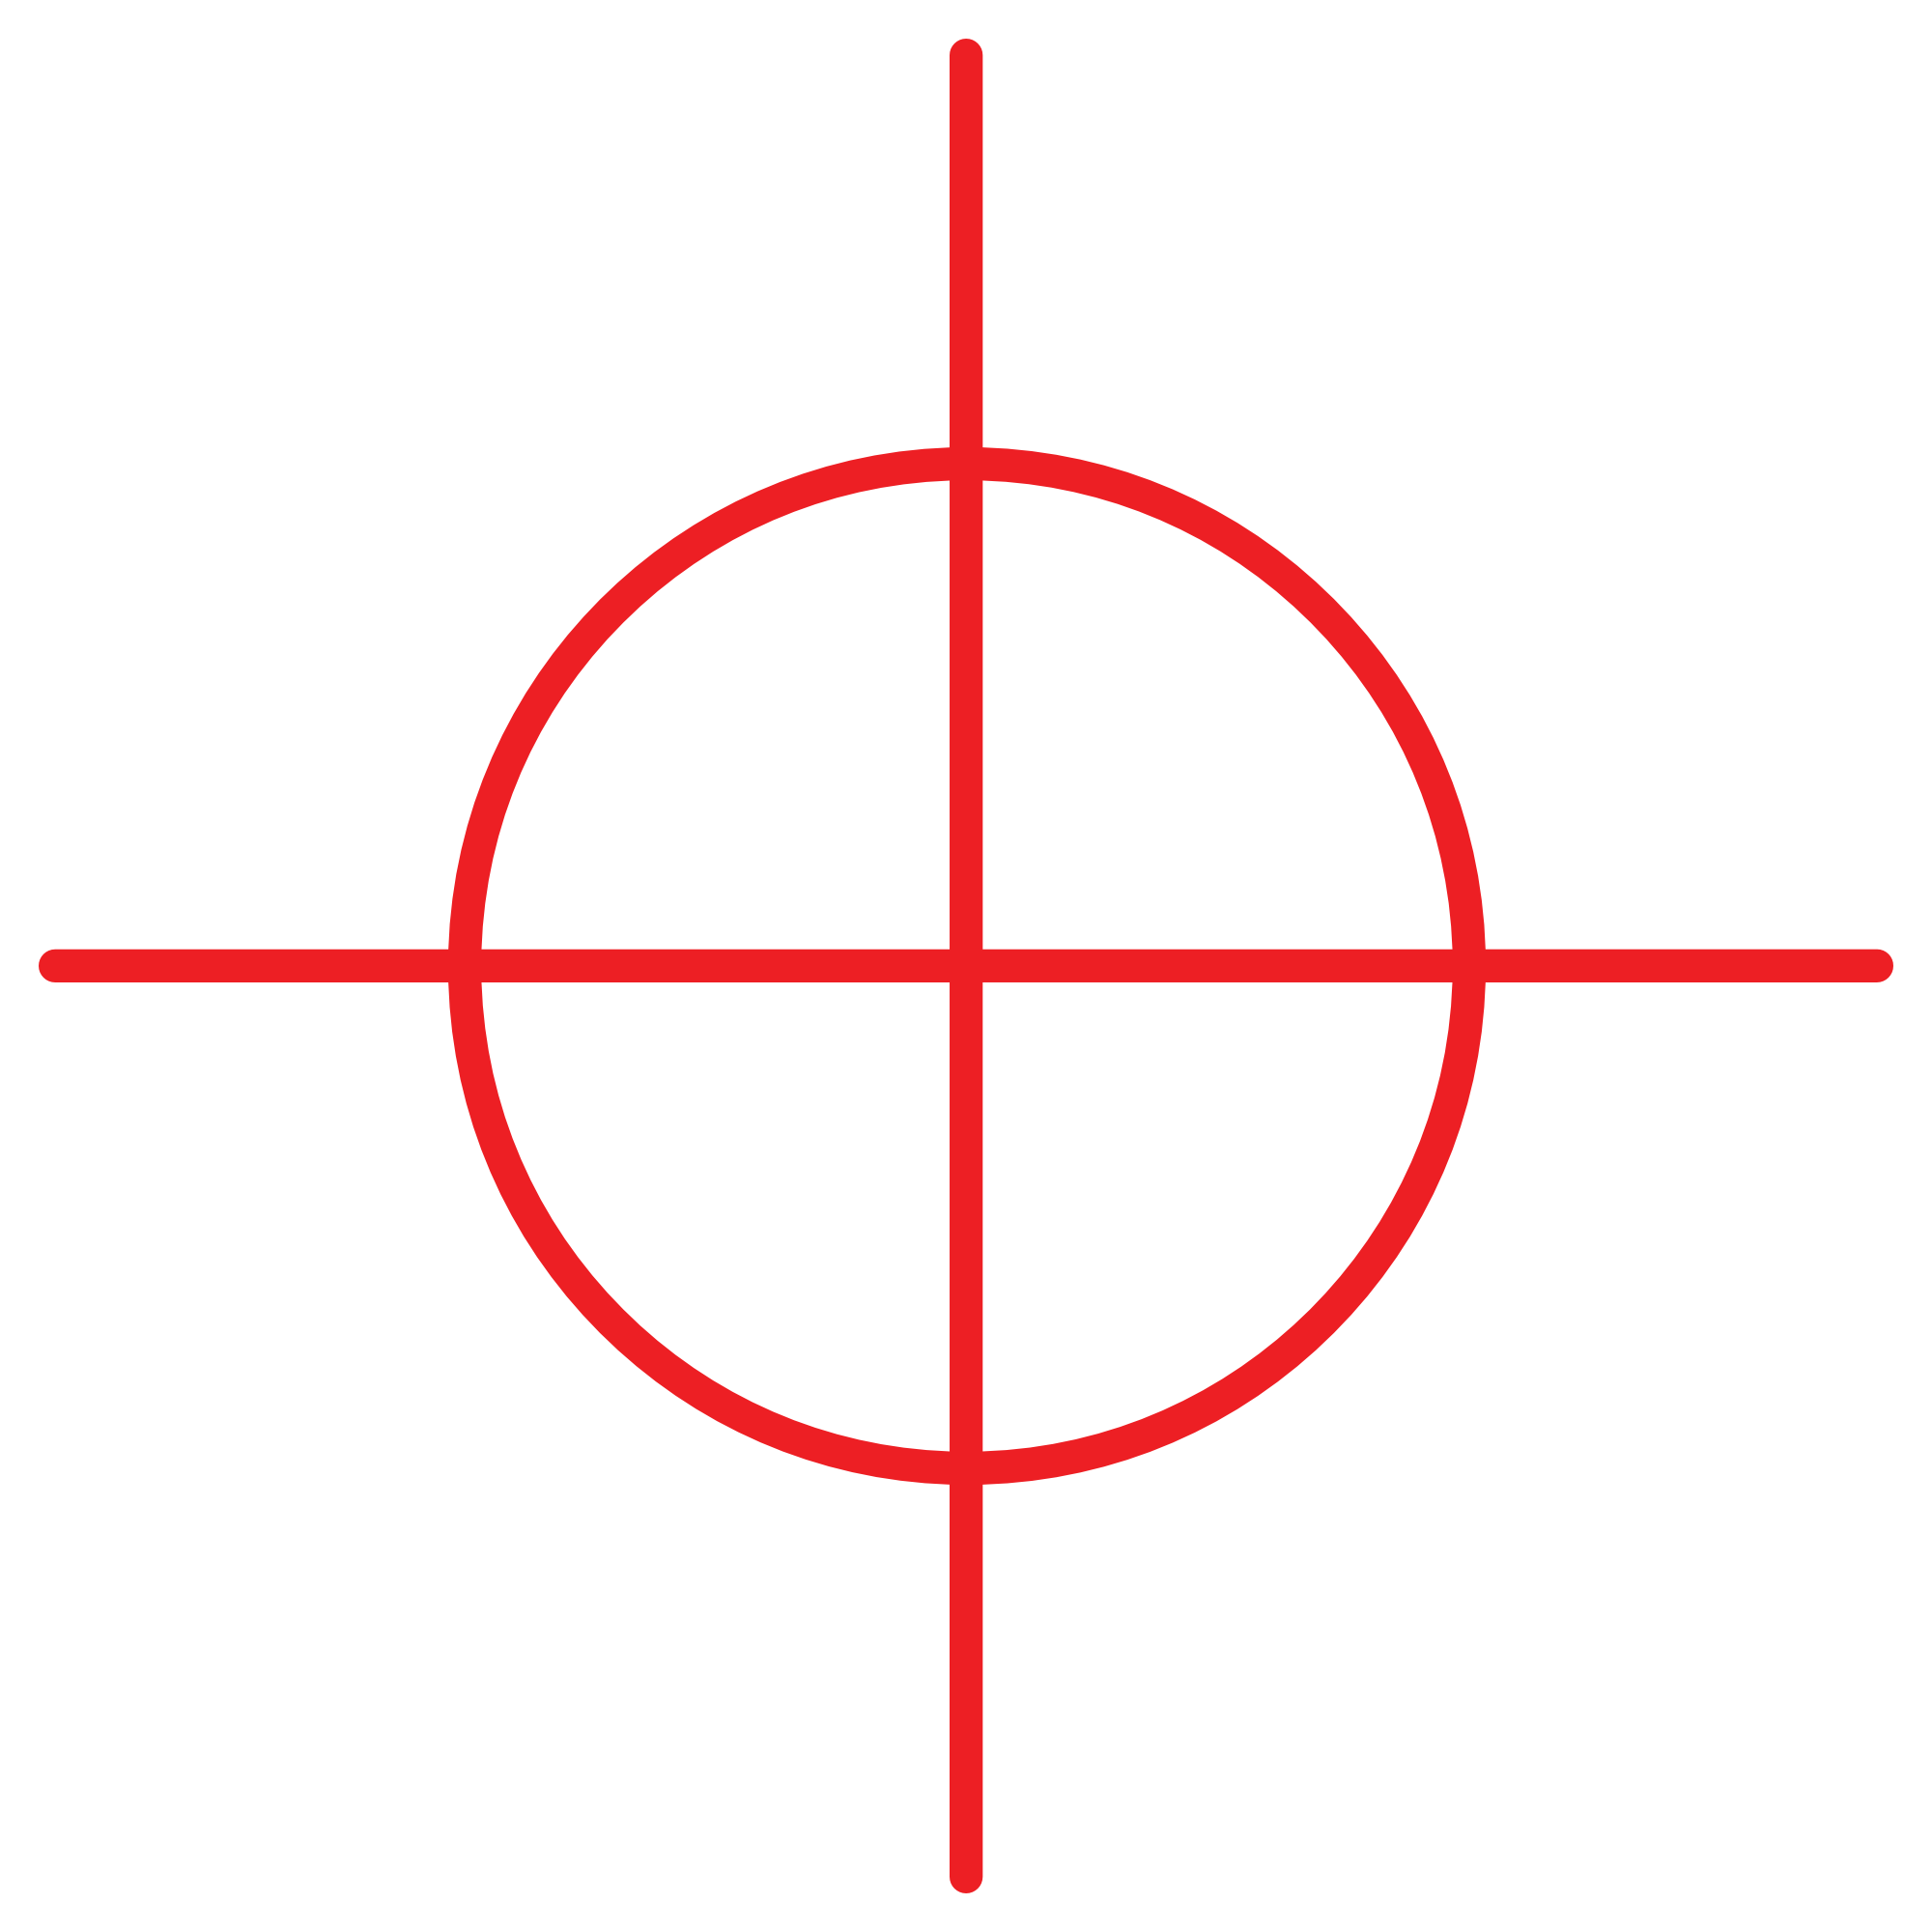 Red crosshair png. Transparent image pngpix resolution